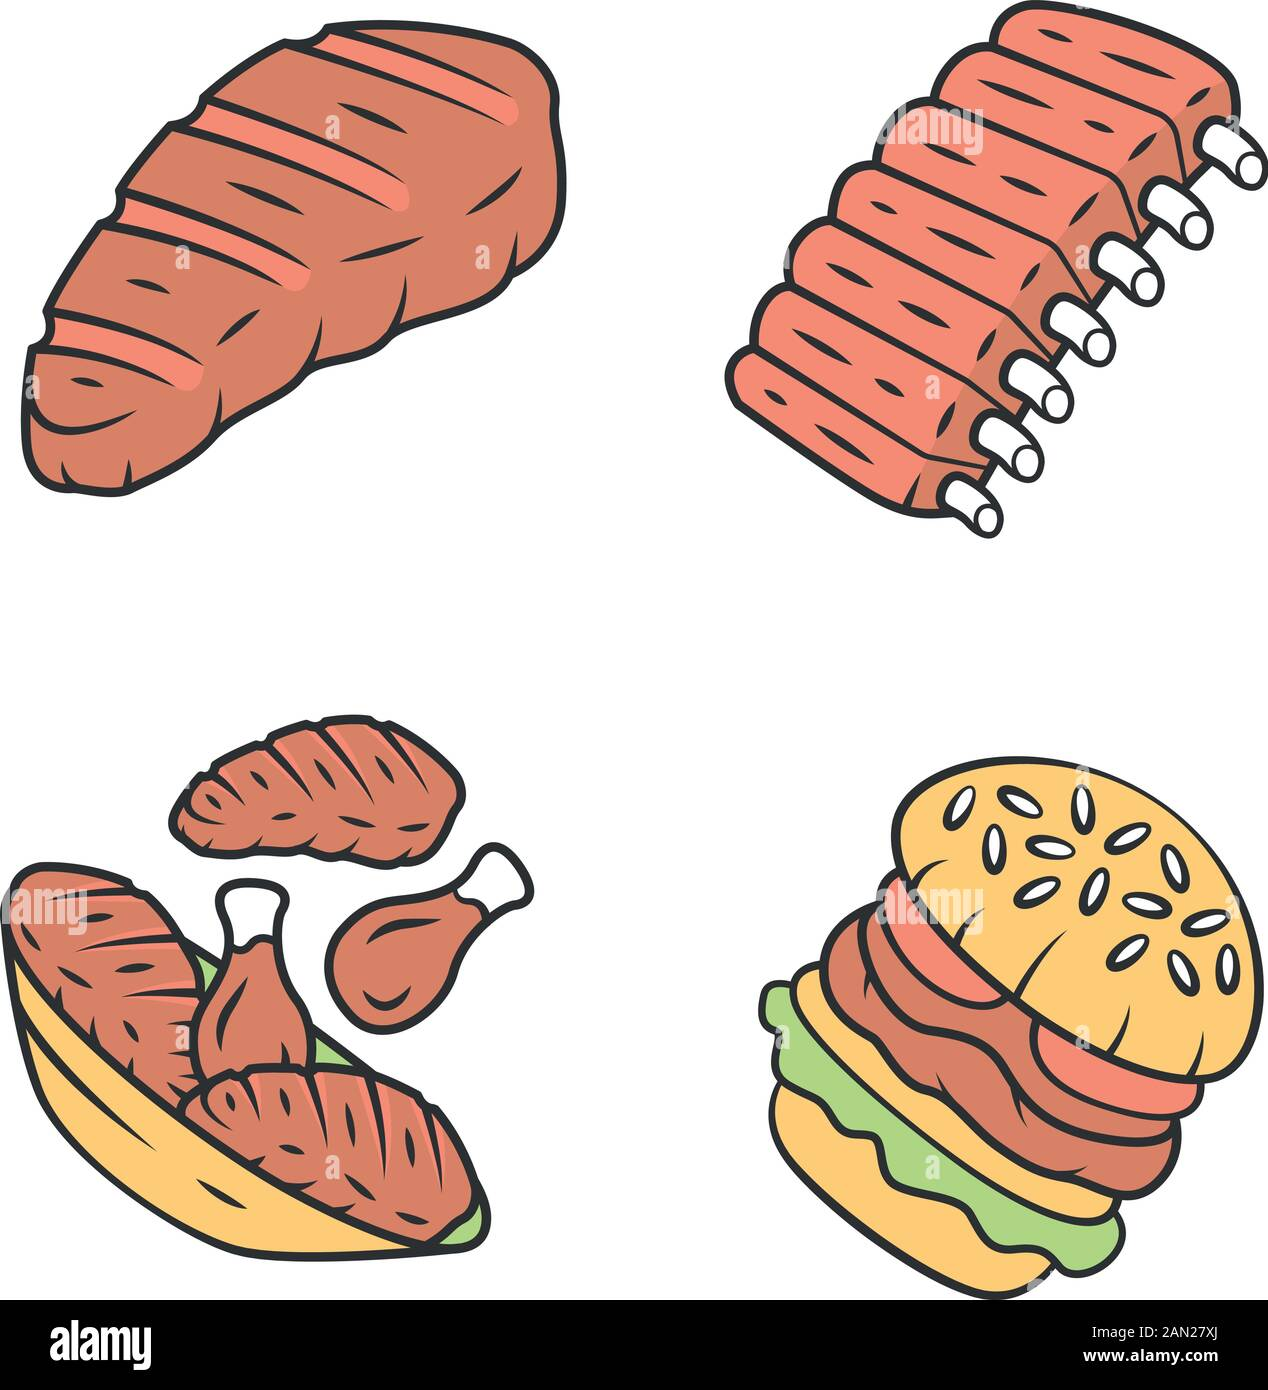 Meat Dishes Color Icons Set Steak Beef Ribs Chicken Legs Burger Fast Food Butcher Shop Product Restaurant Grill Bar Steakhouse Menu Isolated Stock Vector Image Art Alamy